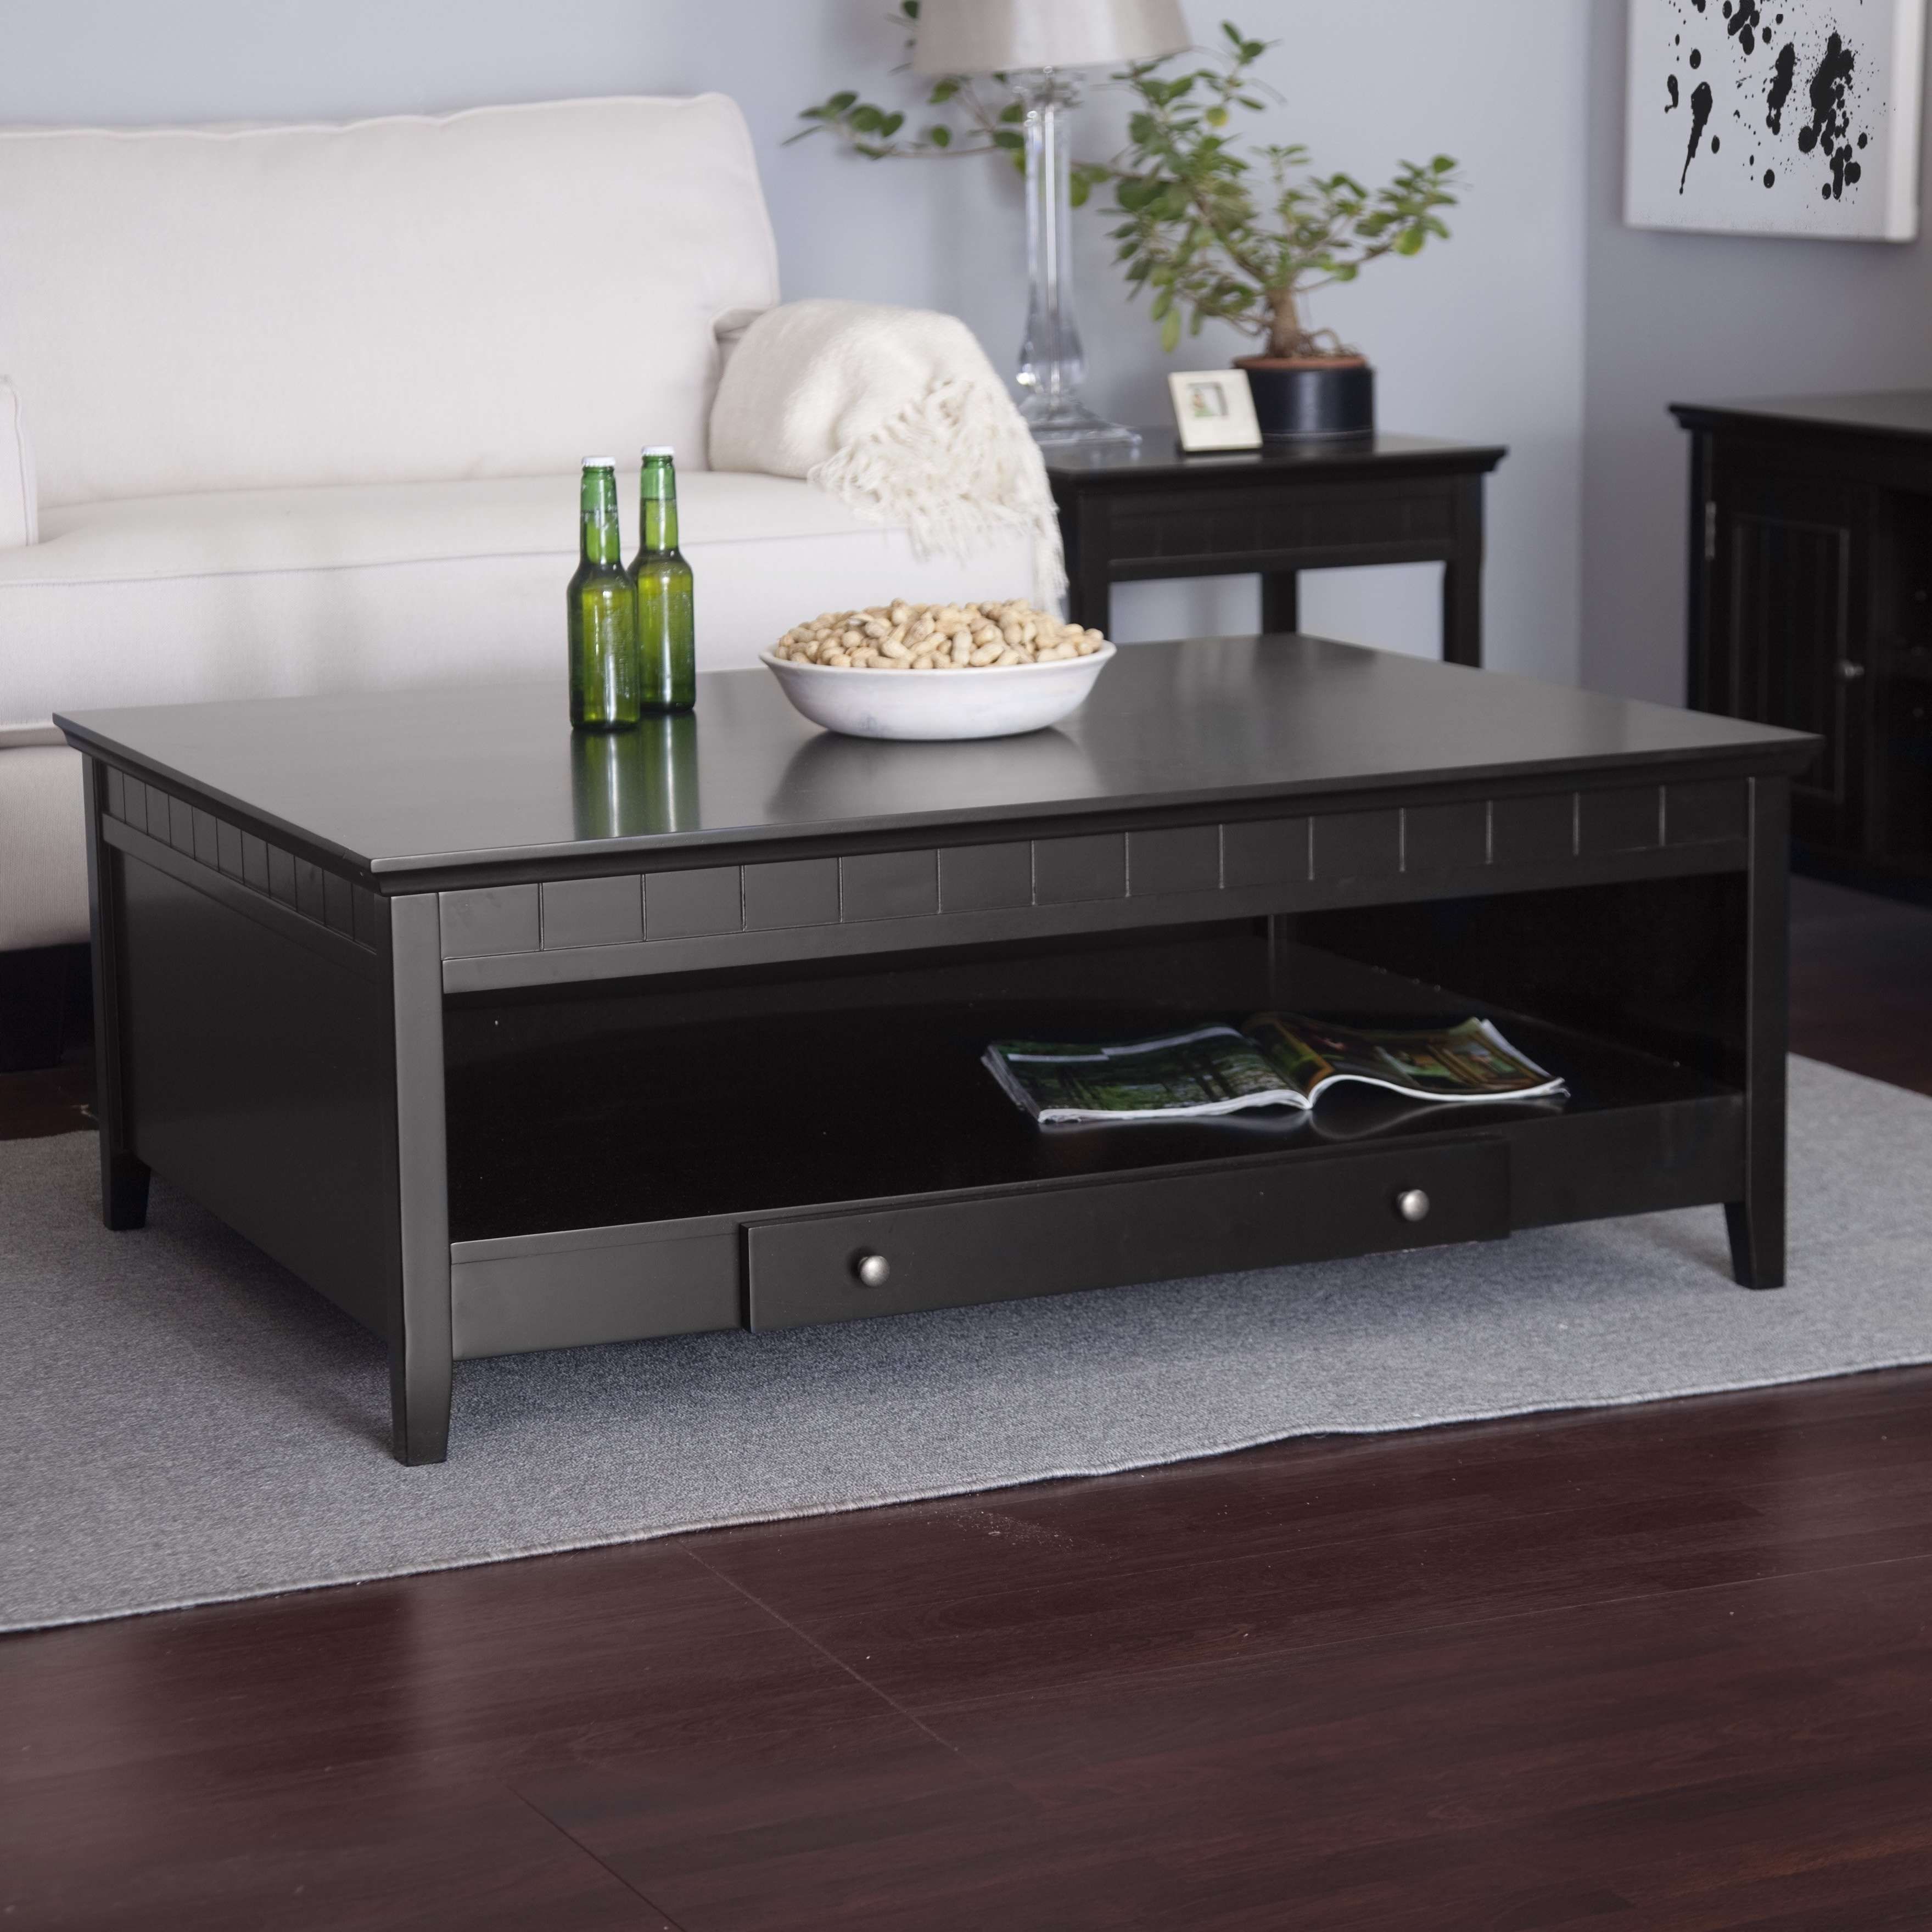 Popular Small Coffee Tables With Storage Regarding Coffee Table Black Coffee Table Image Of Trunk Tables Storage (View 8 of 20)